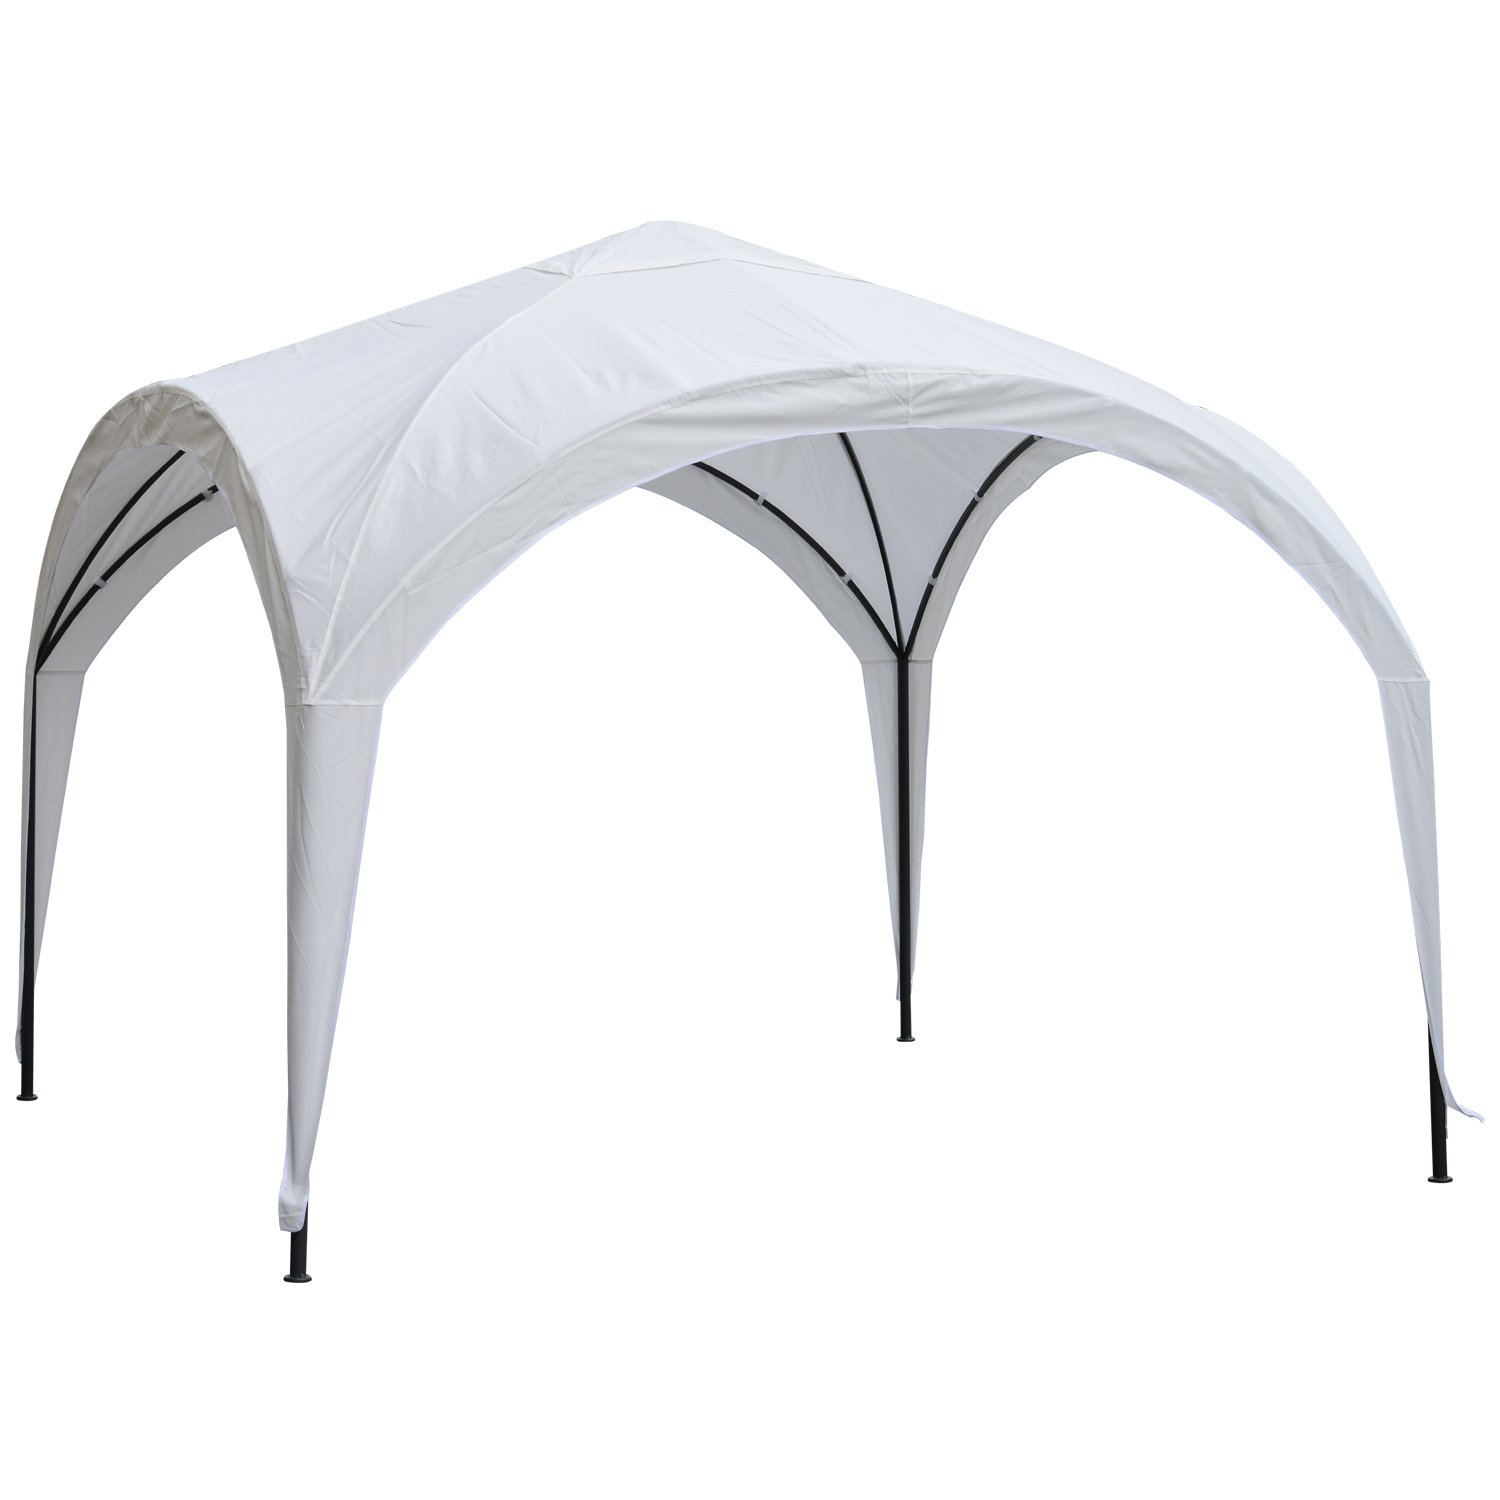 Outsunny 10' x 10' Outdoor Portable Dome Canopy Tent Sunshade Cover Durable Patio - White